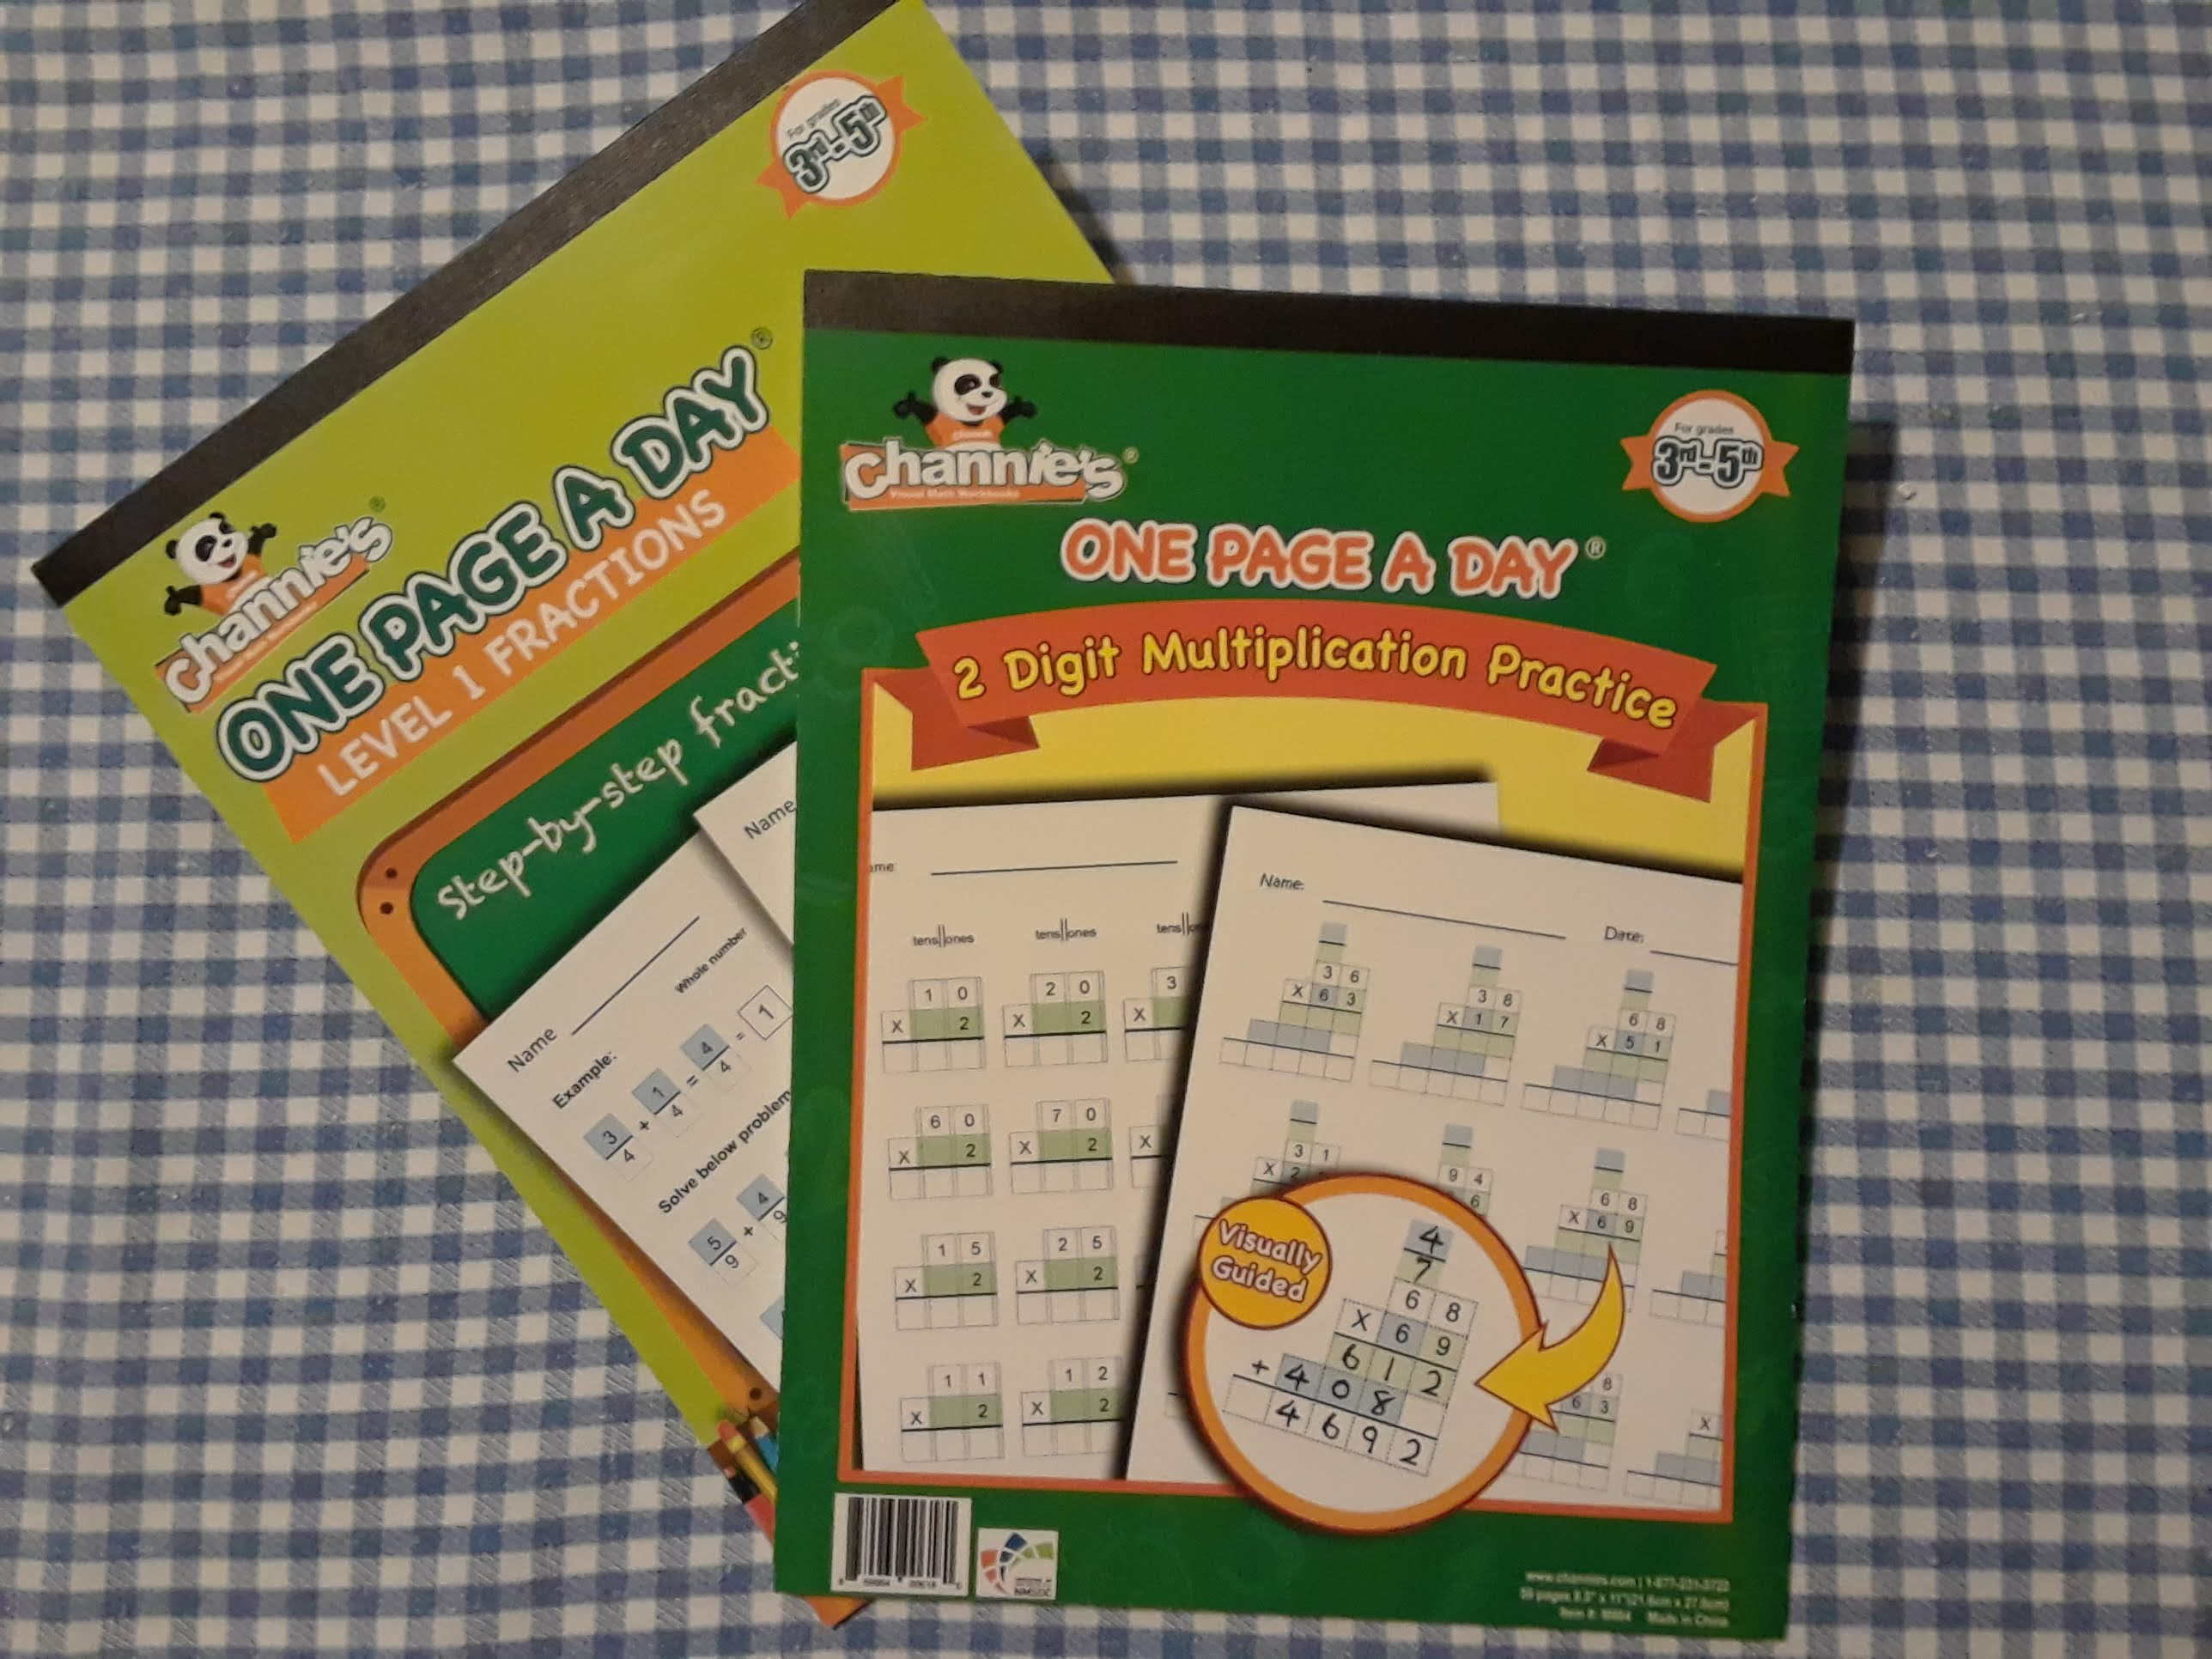 Channies_workbooks